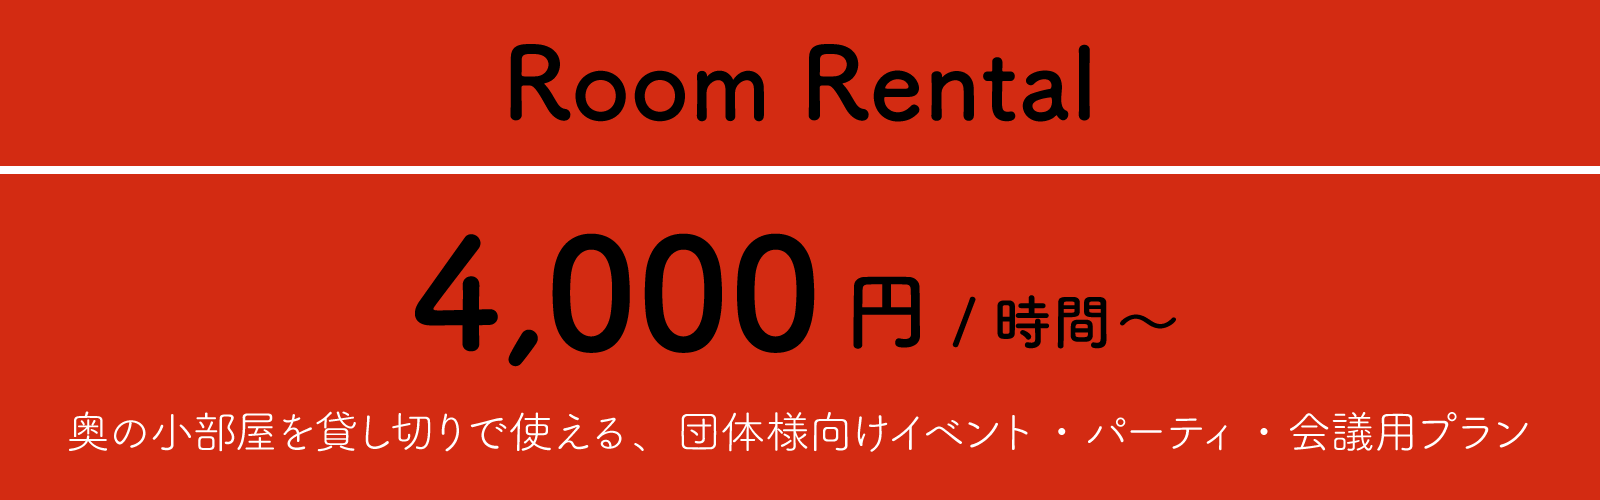 04_RoomRental.png